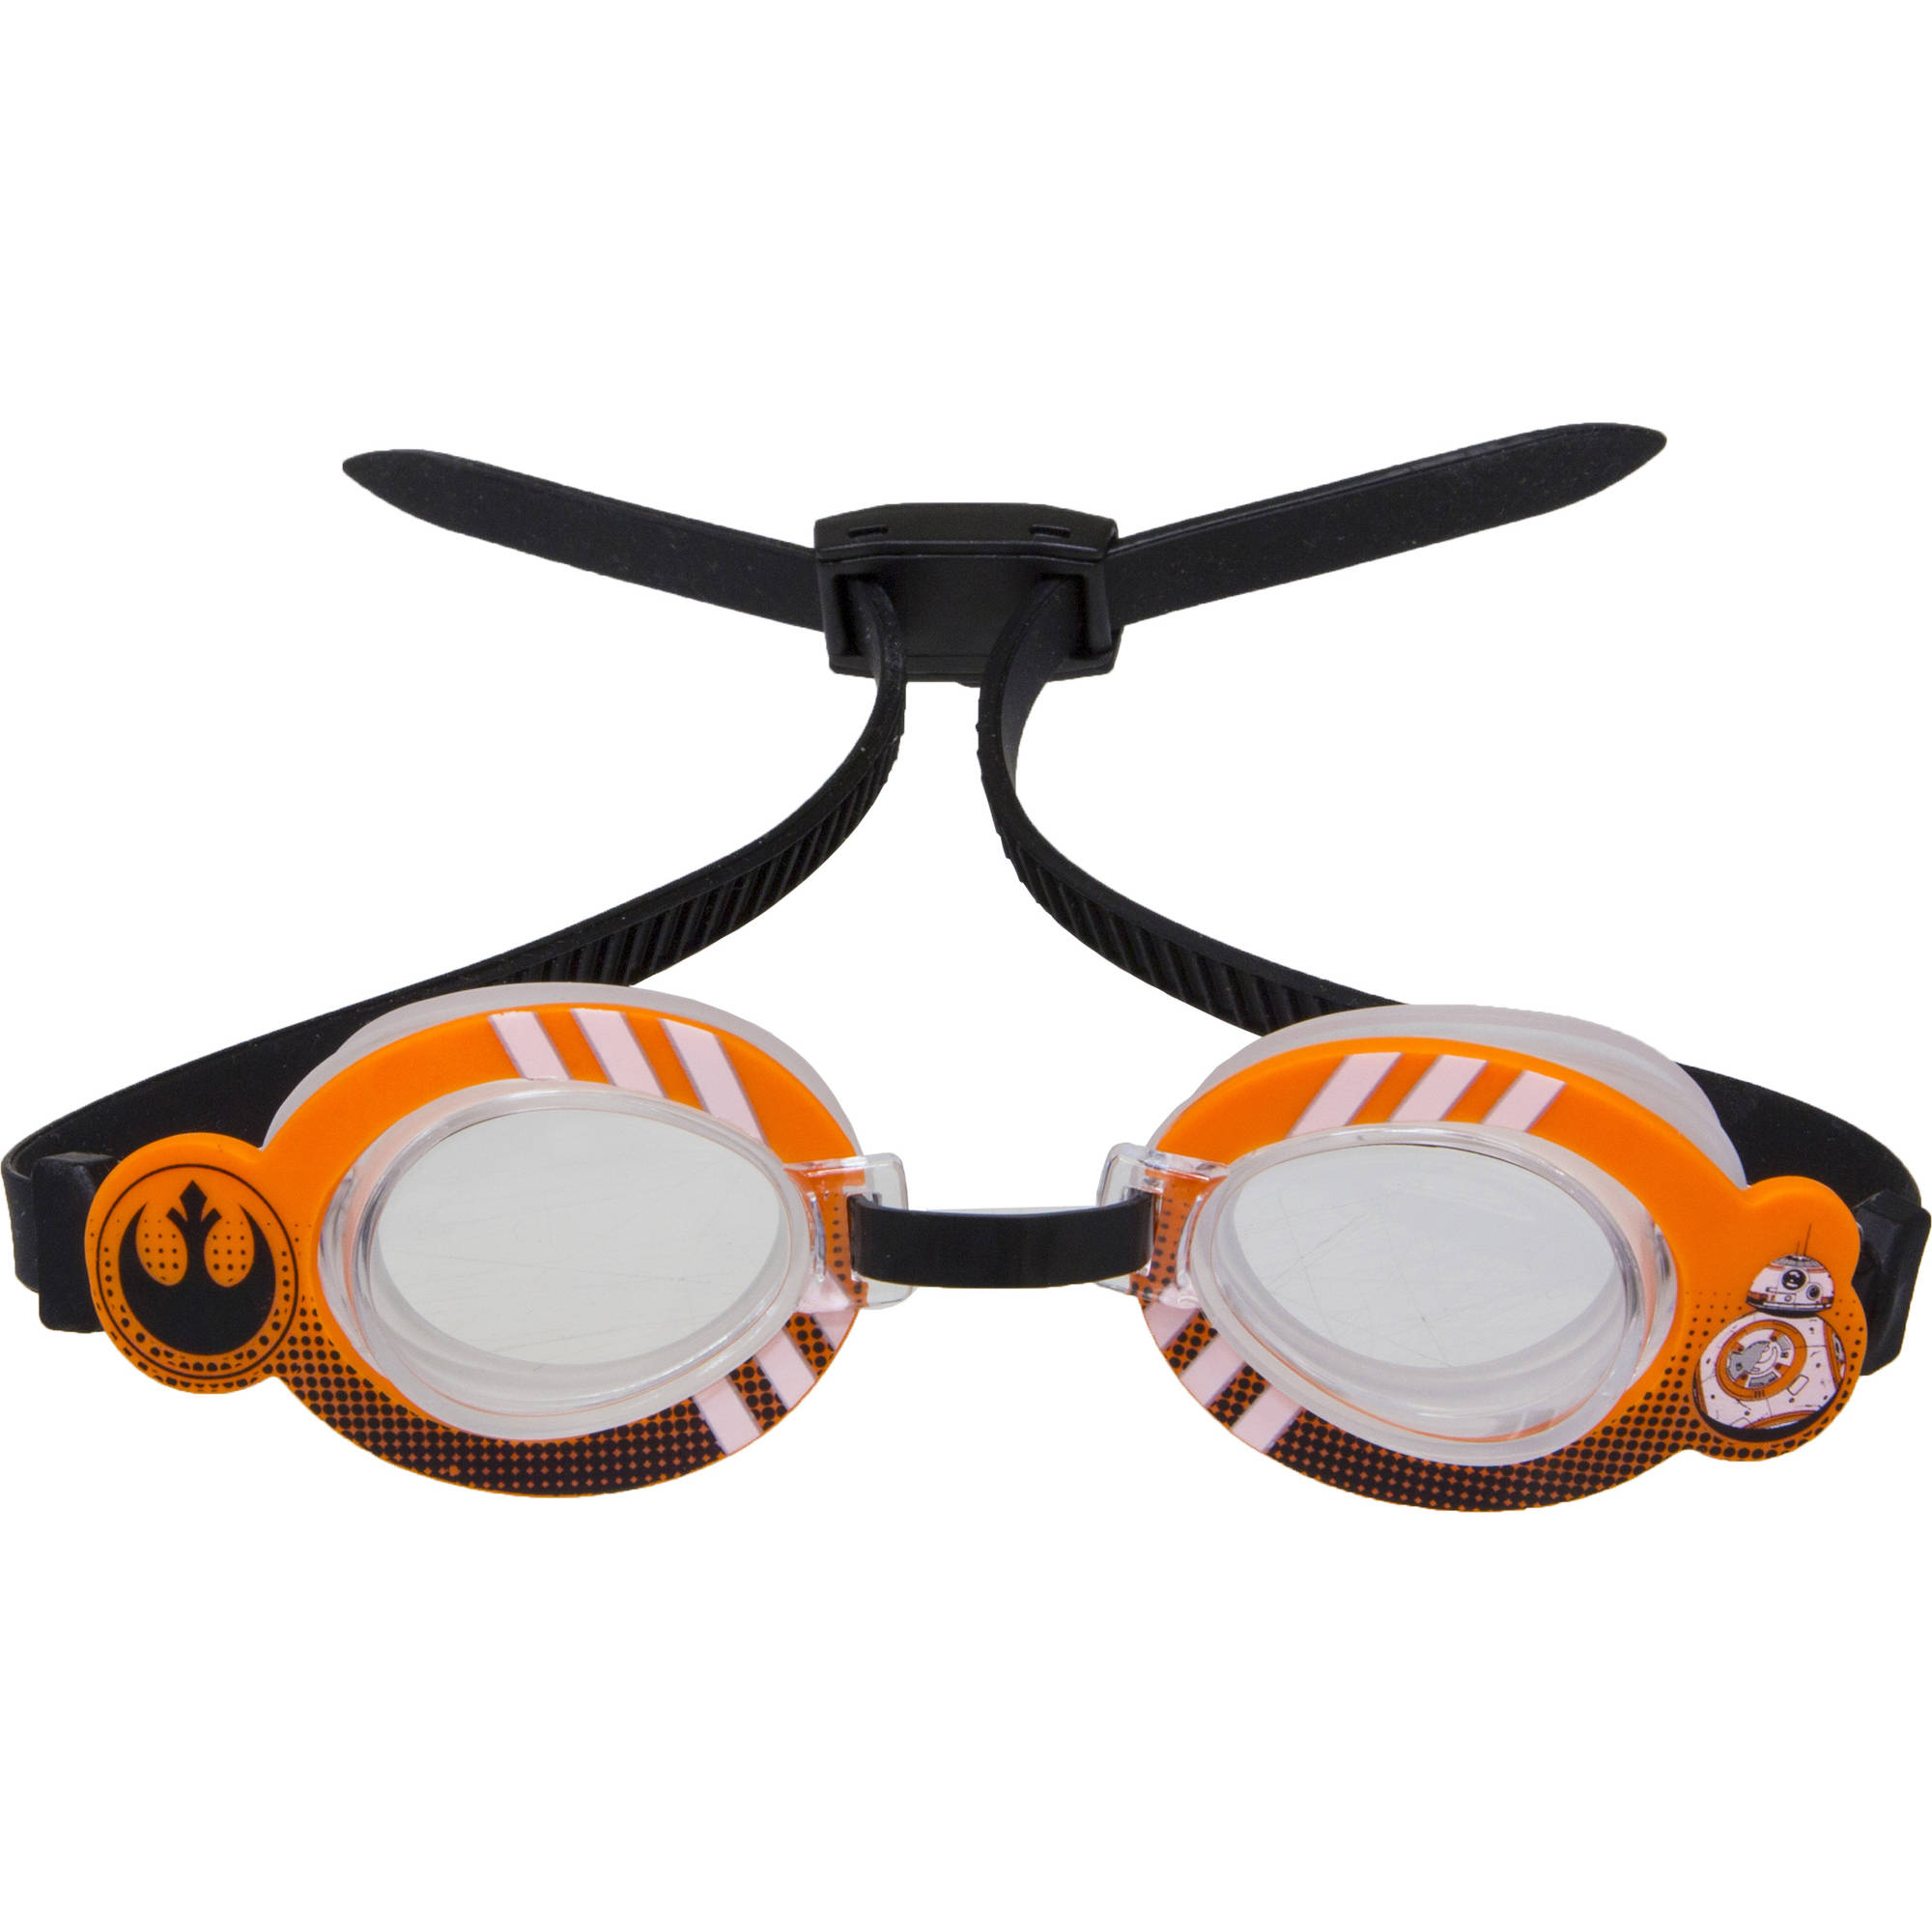 SwimWays Star Wars Licensed Goggles by PACIFIC GLOW LIMITED